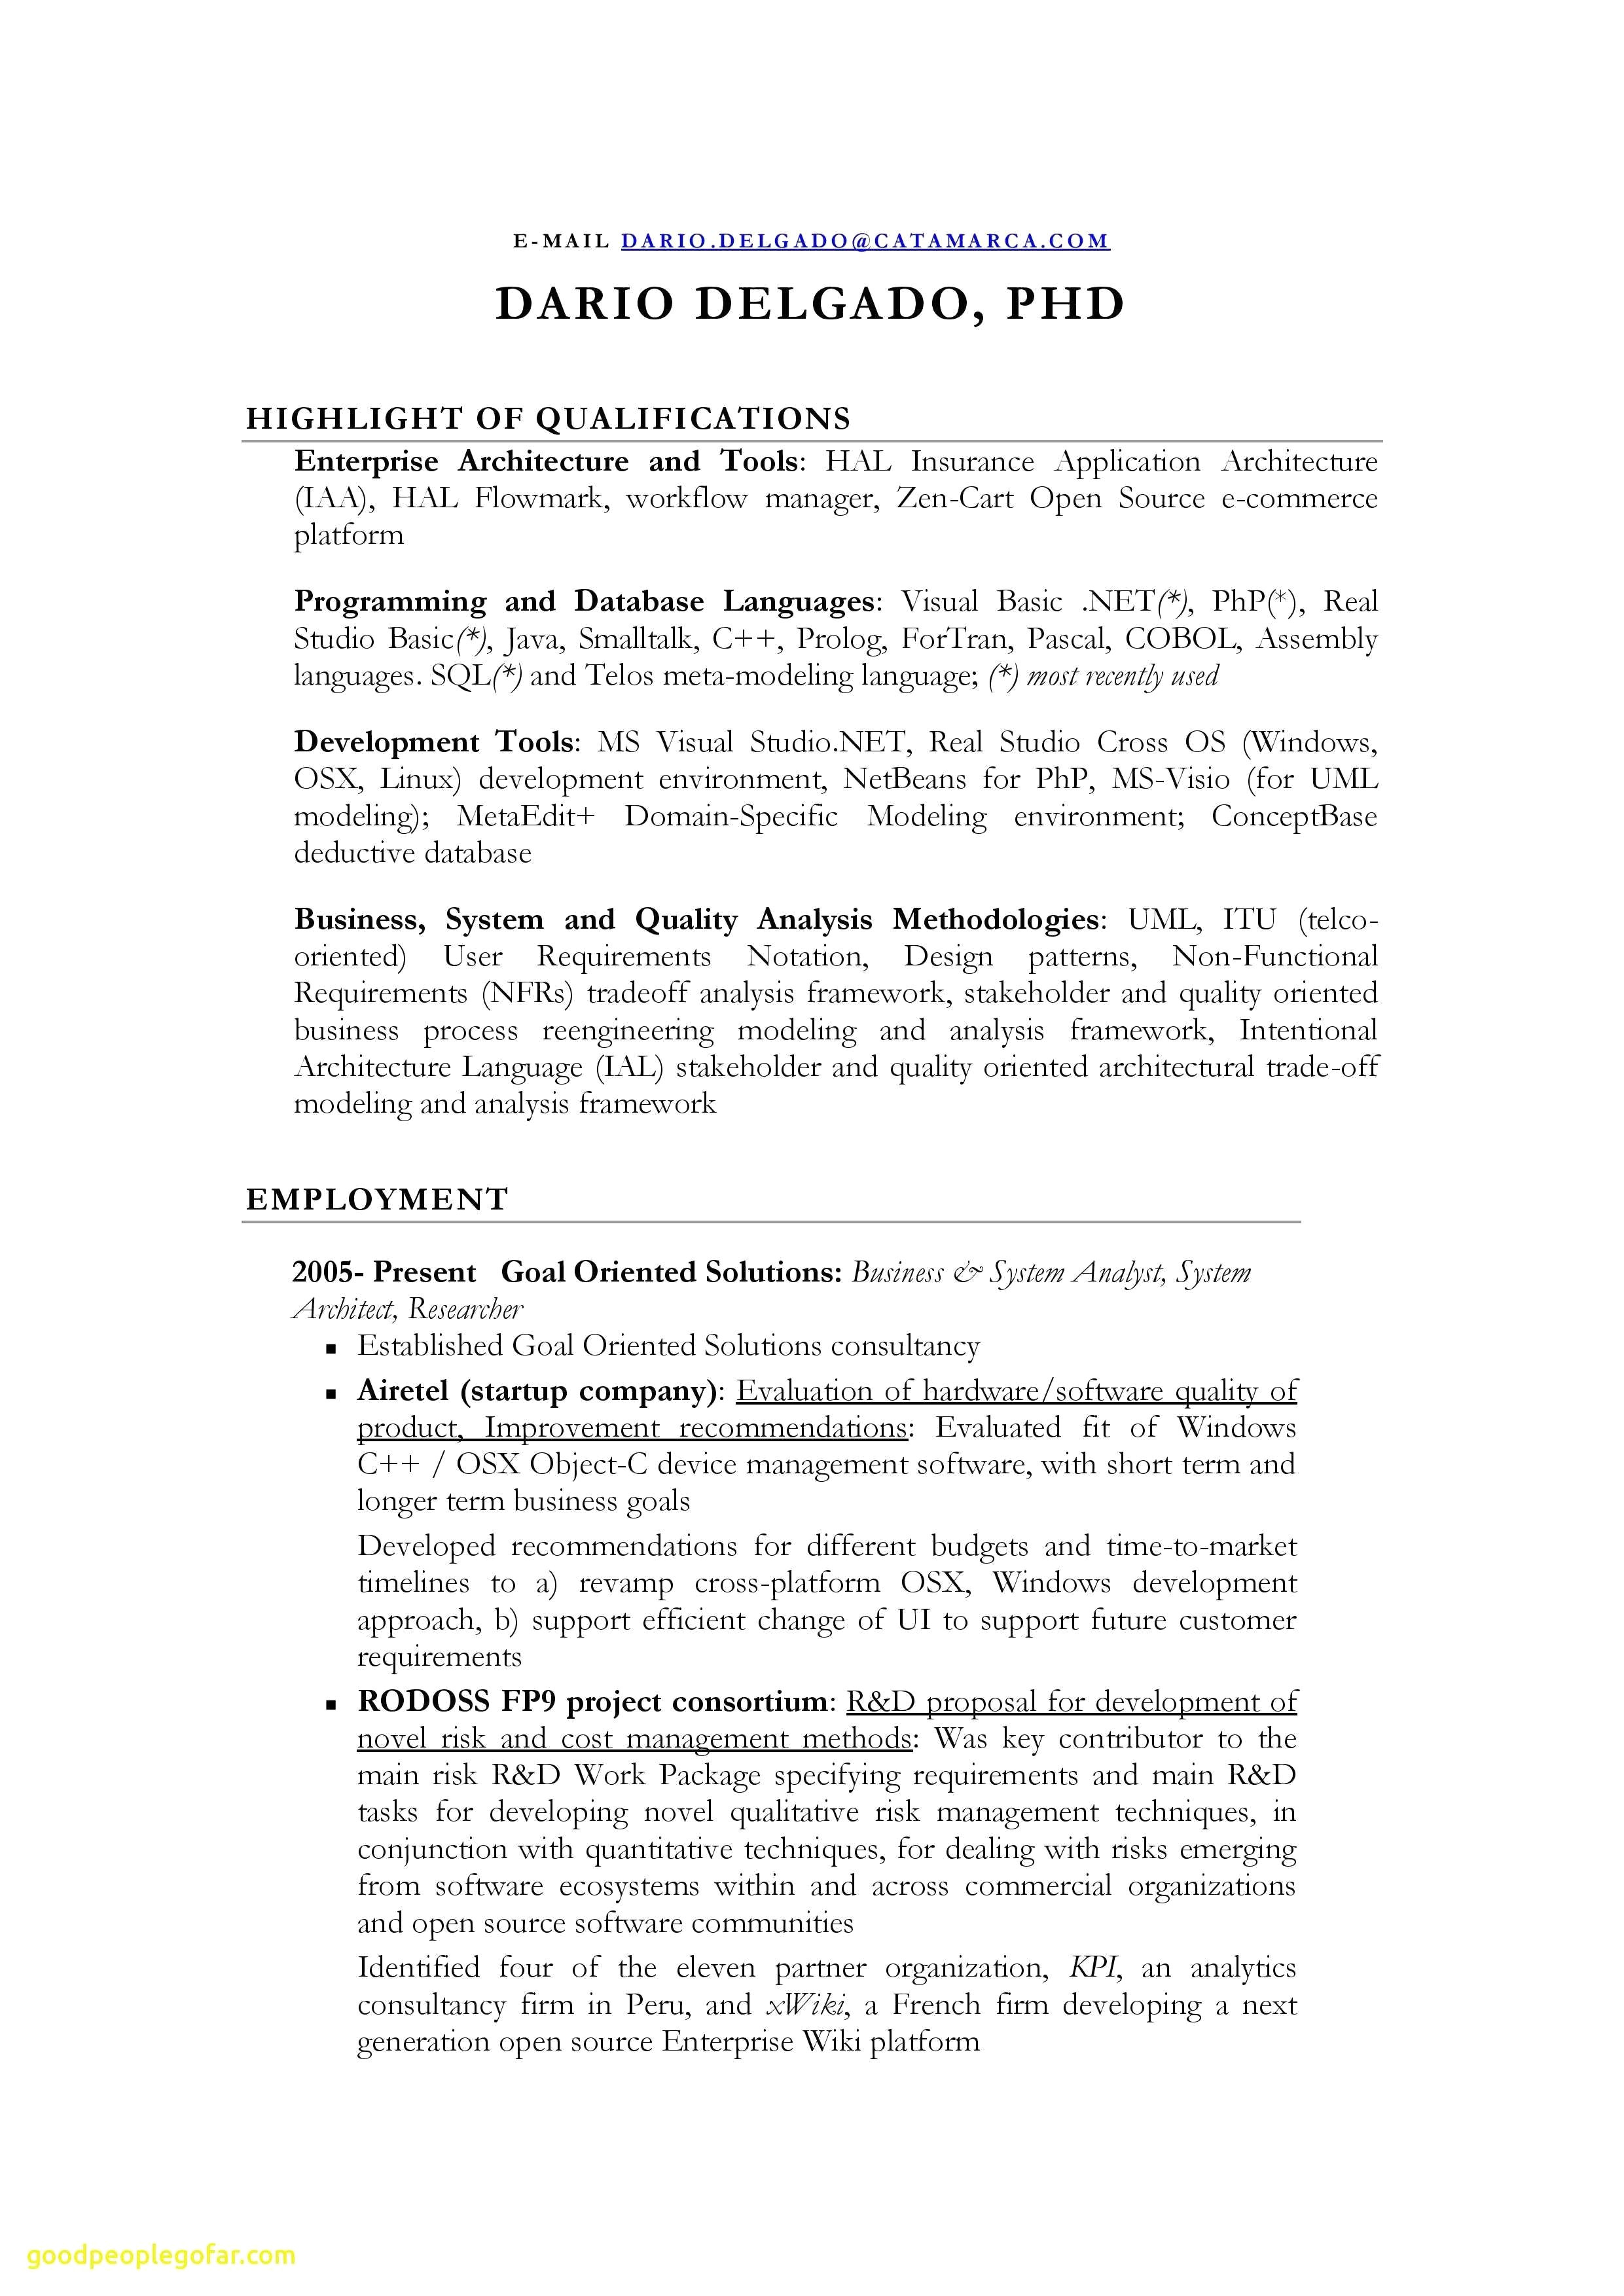 Best Executive Resumes - 49 Design Rn Resume Examples